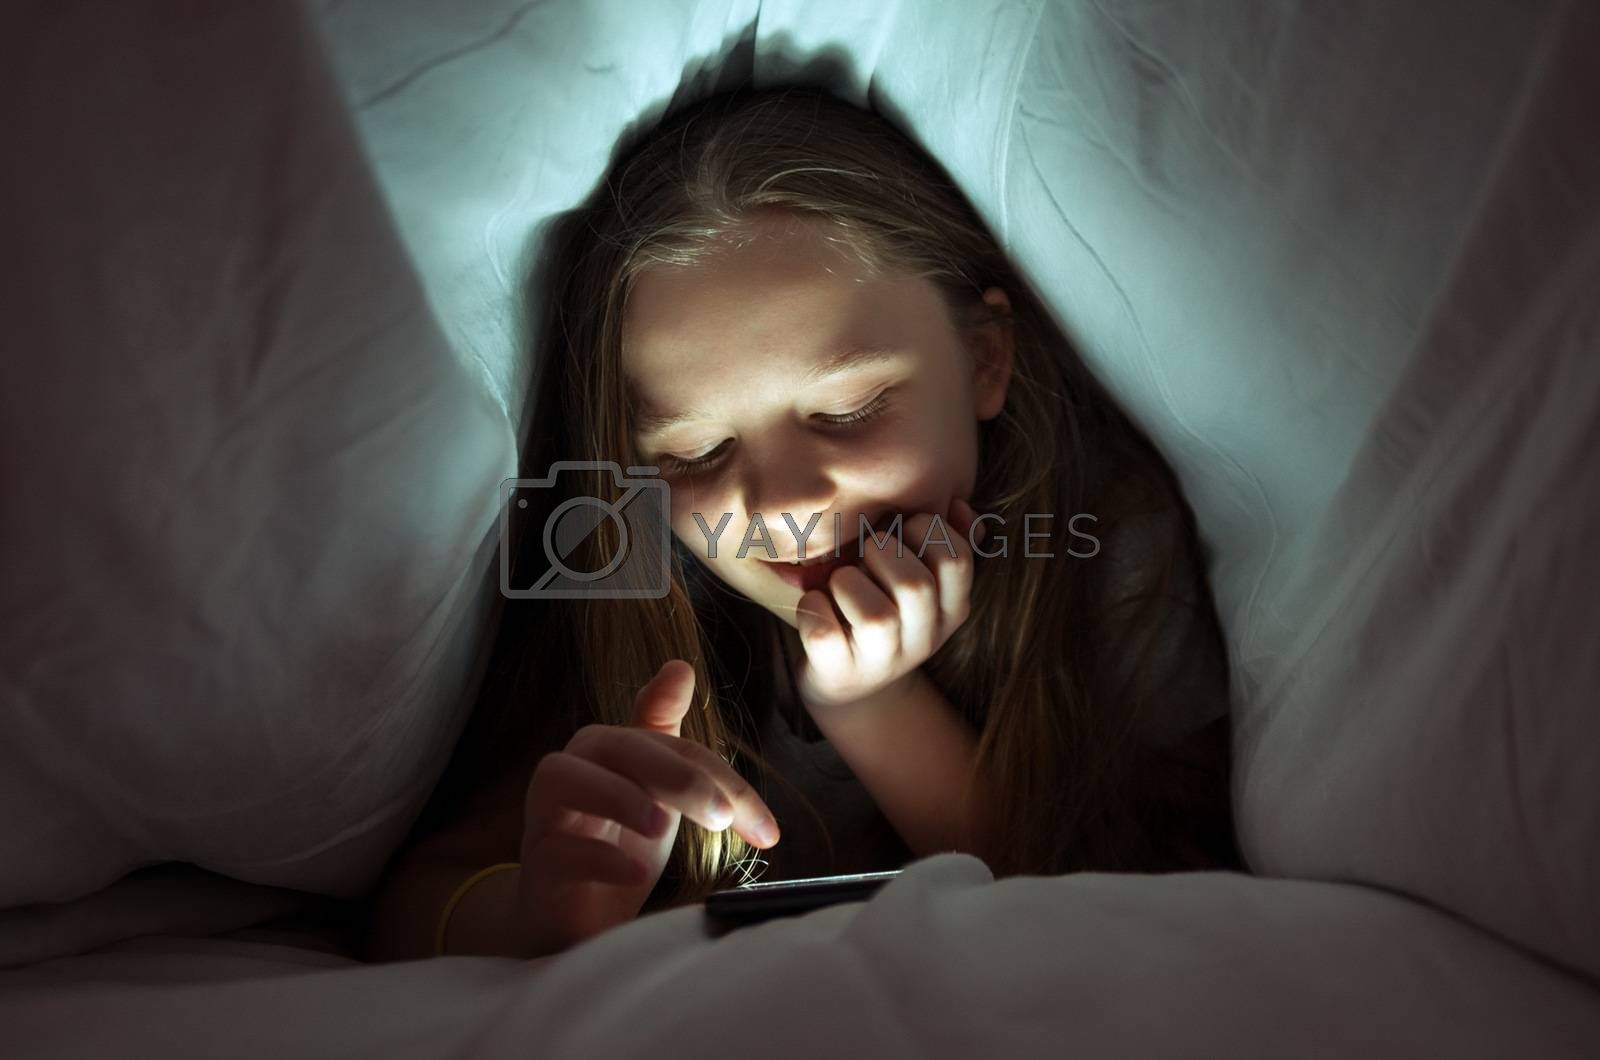 Young girl using a phone in bed by gmstockstudio